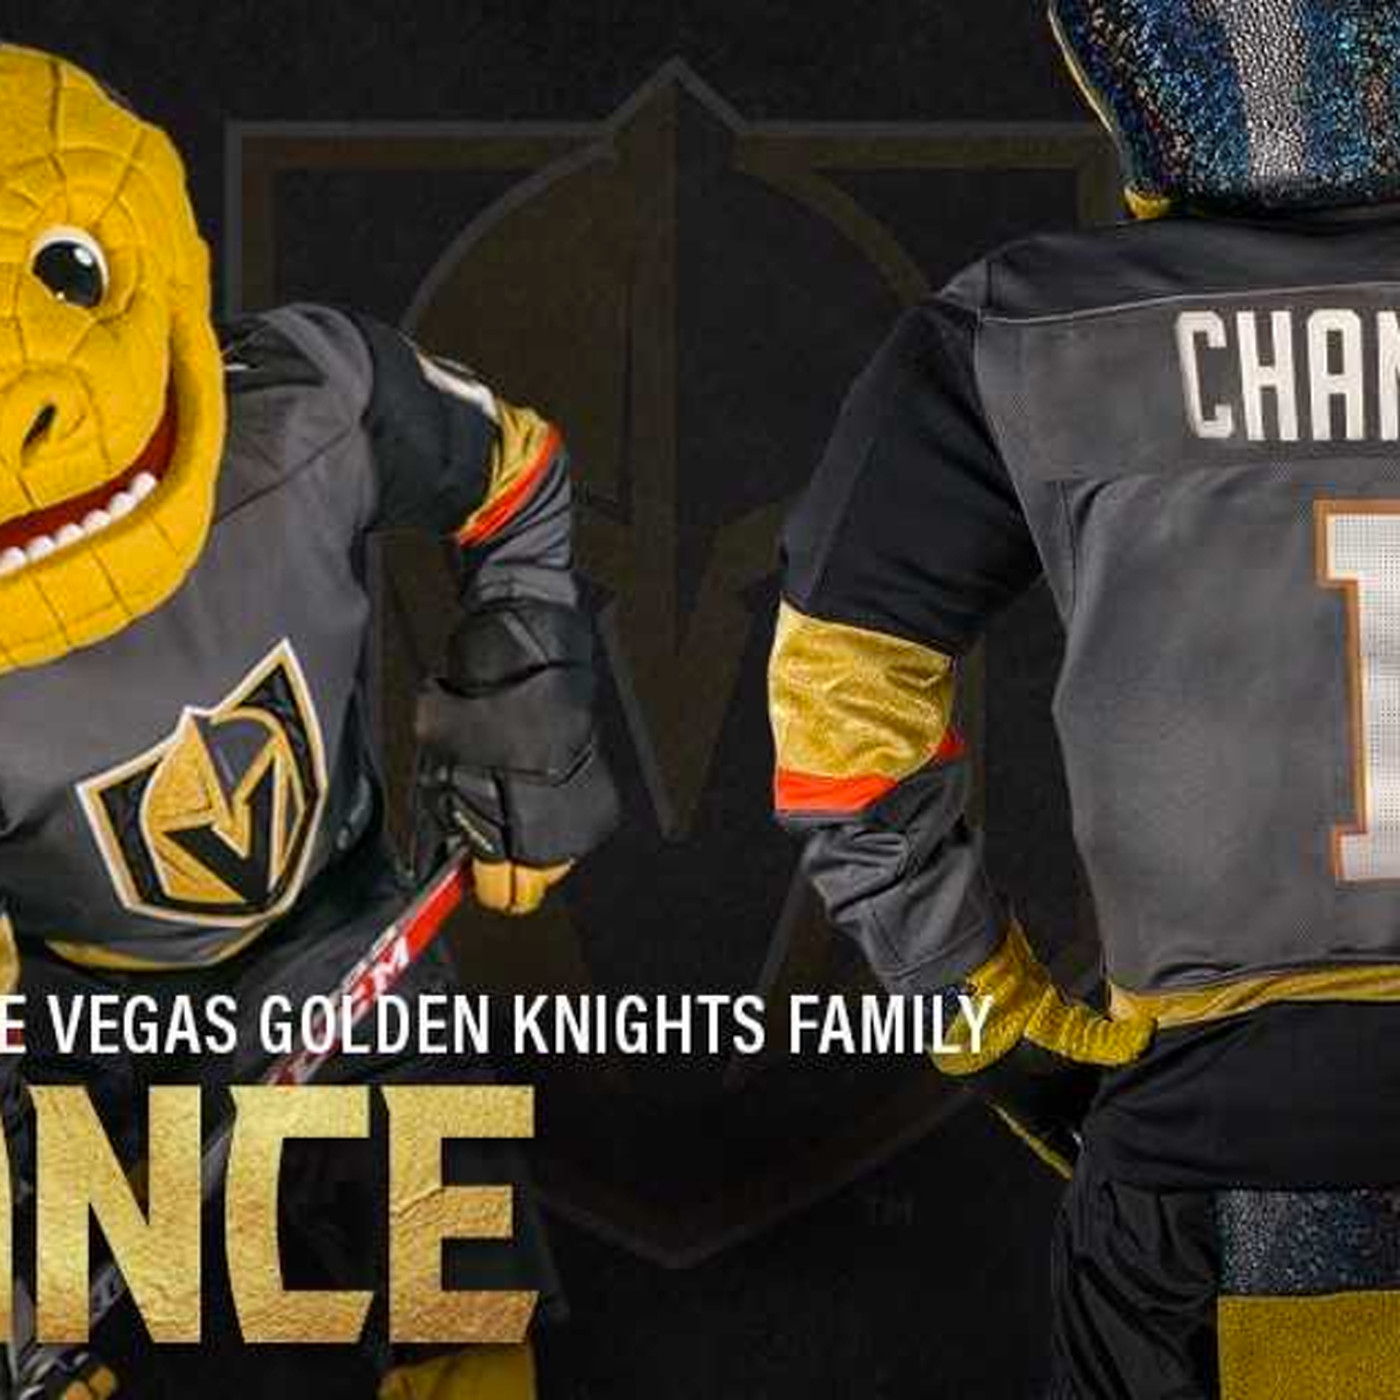 579045c56c70 Vegas Golden Knights' mascot is … not a knight? We have some questions -  SBNation.com